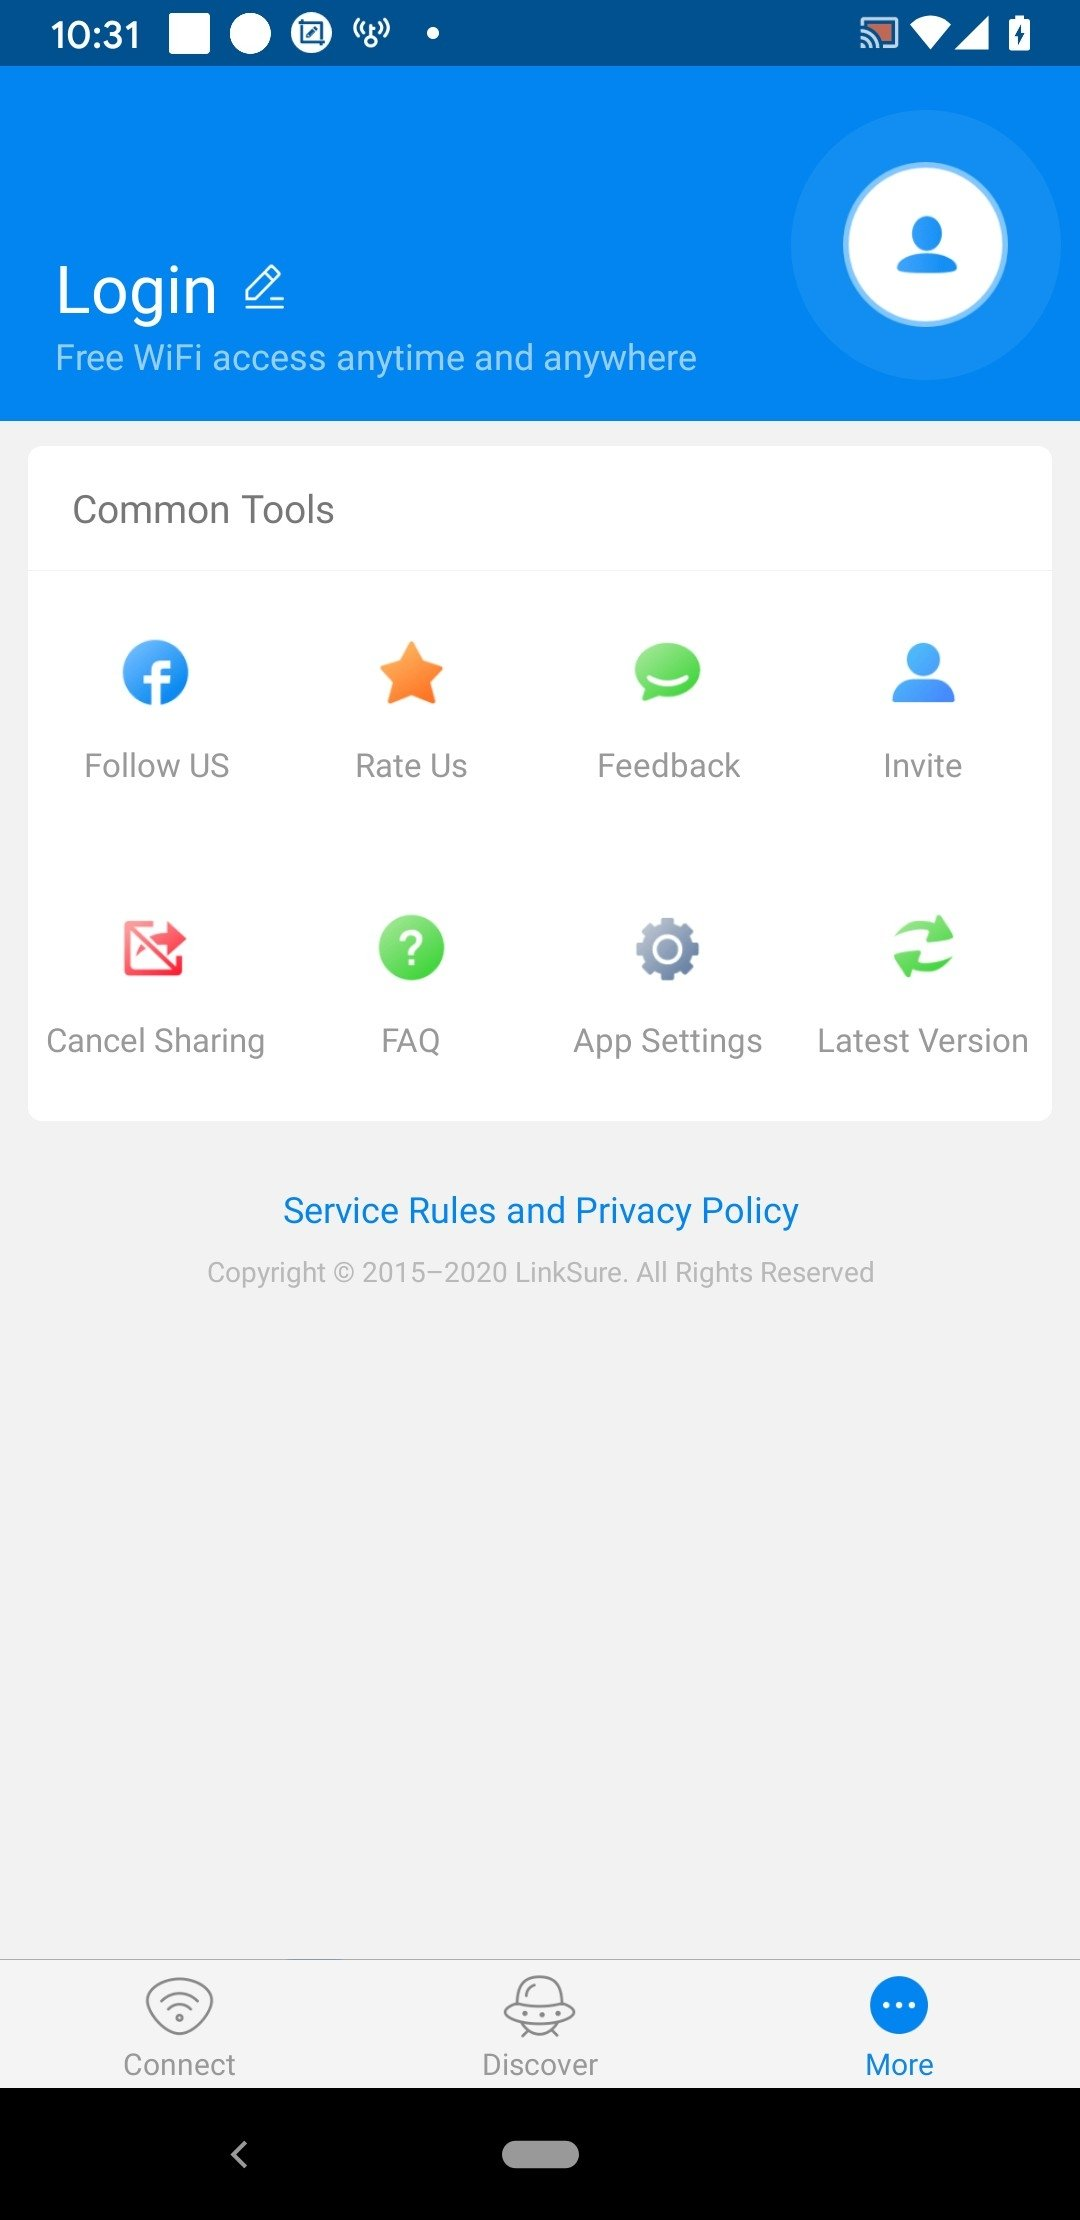 WiFi Master Key 4 6 27 - Download for Android APK Free